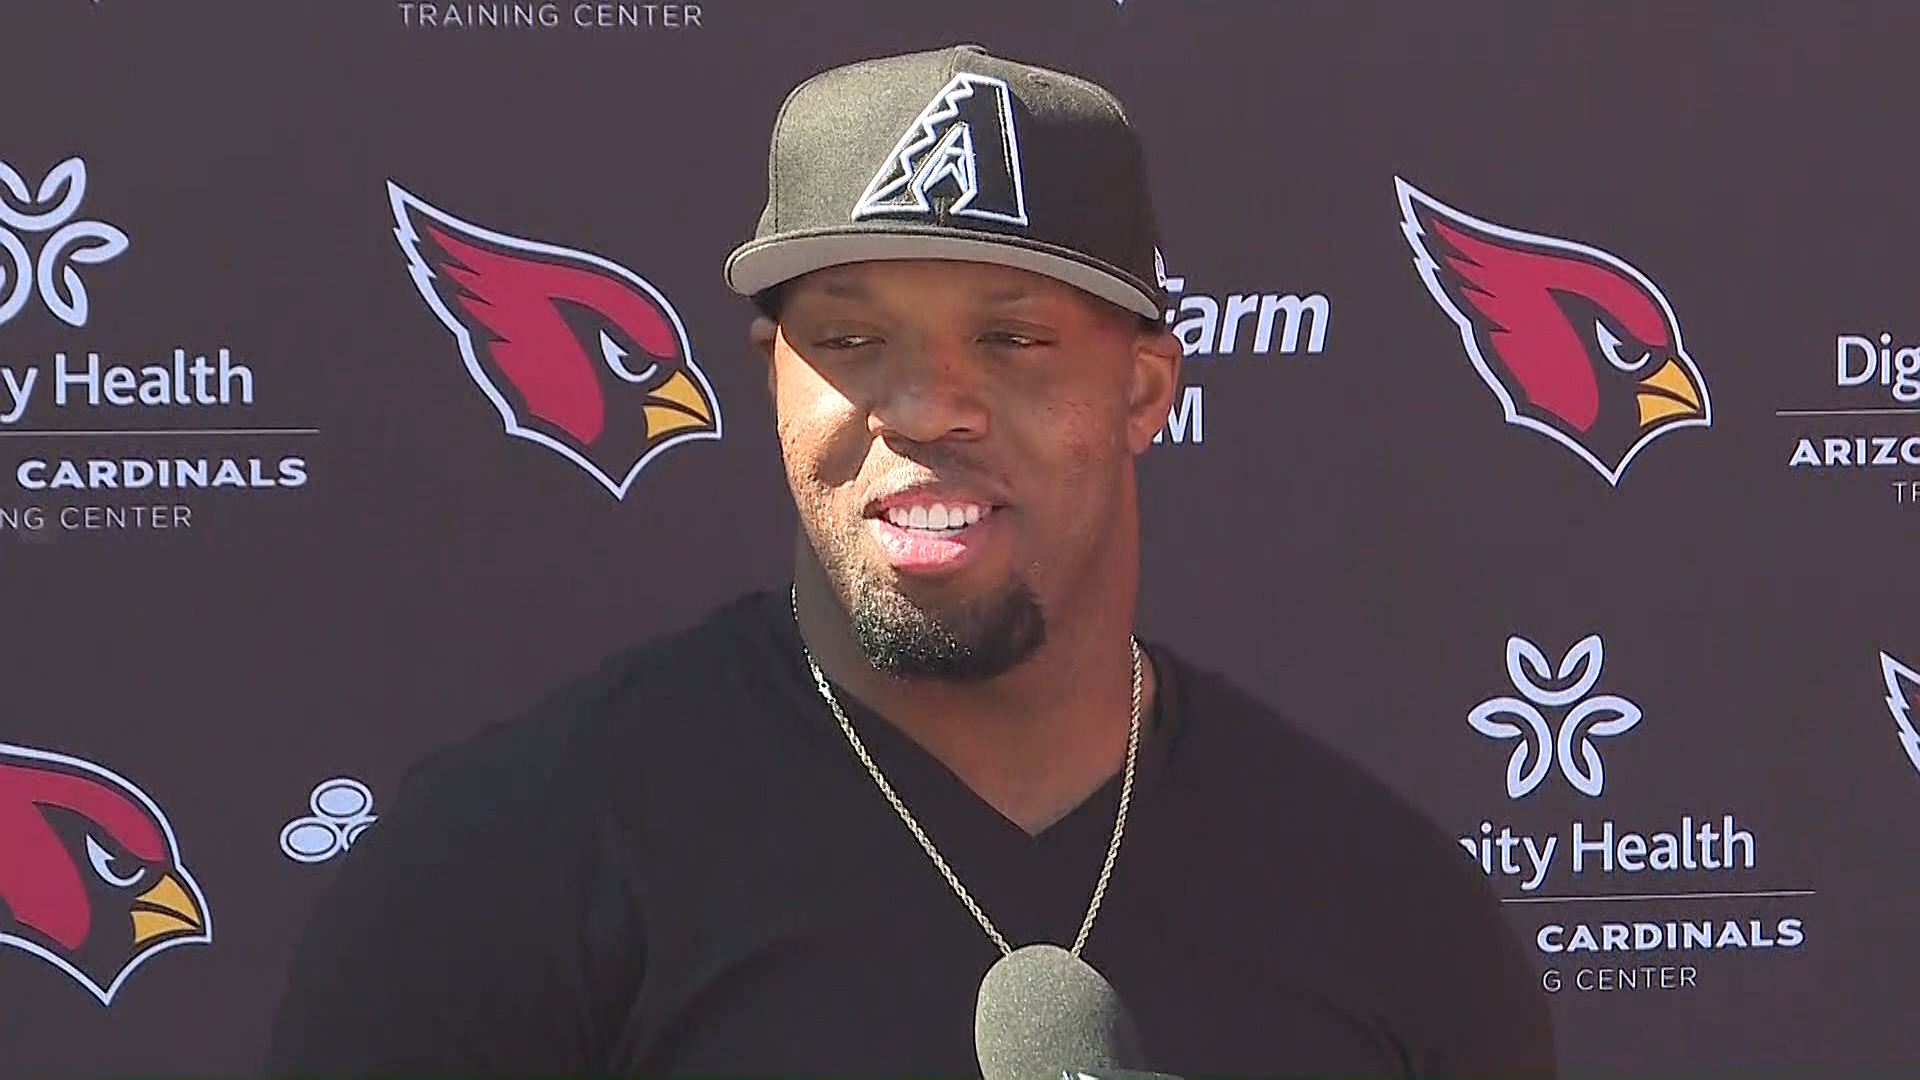 Terrell Suggs isn't sure how he'll be received by former team